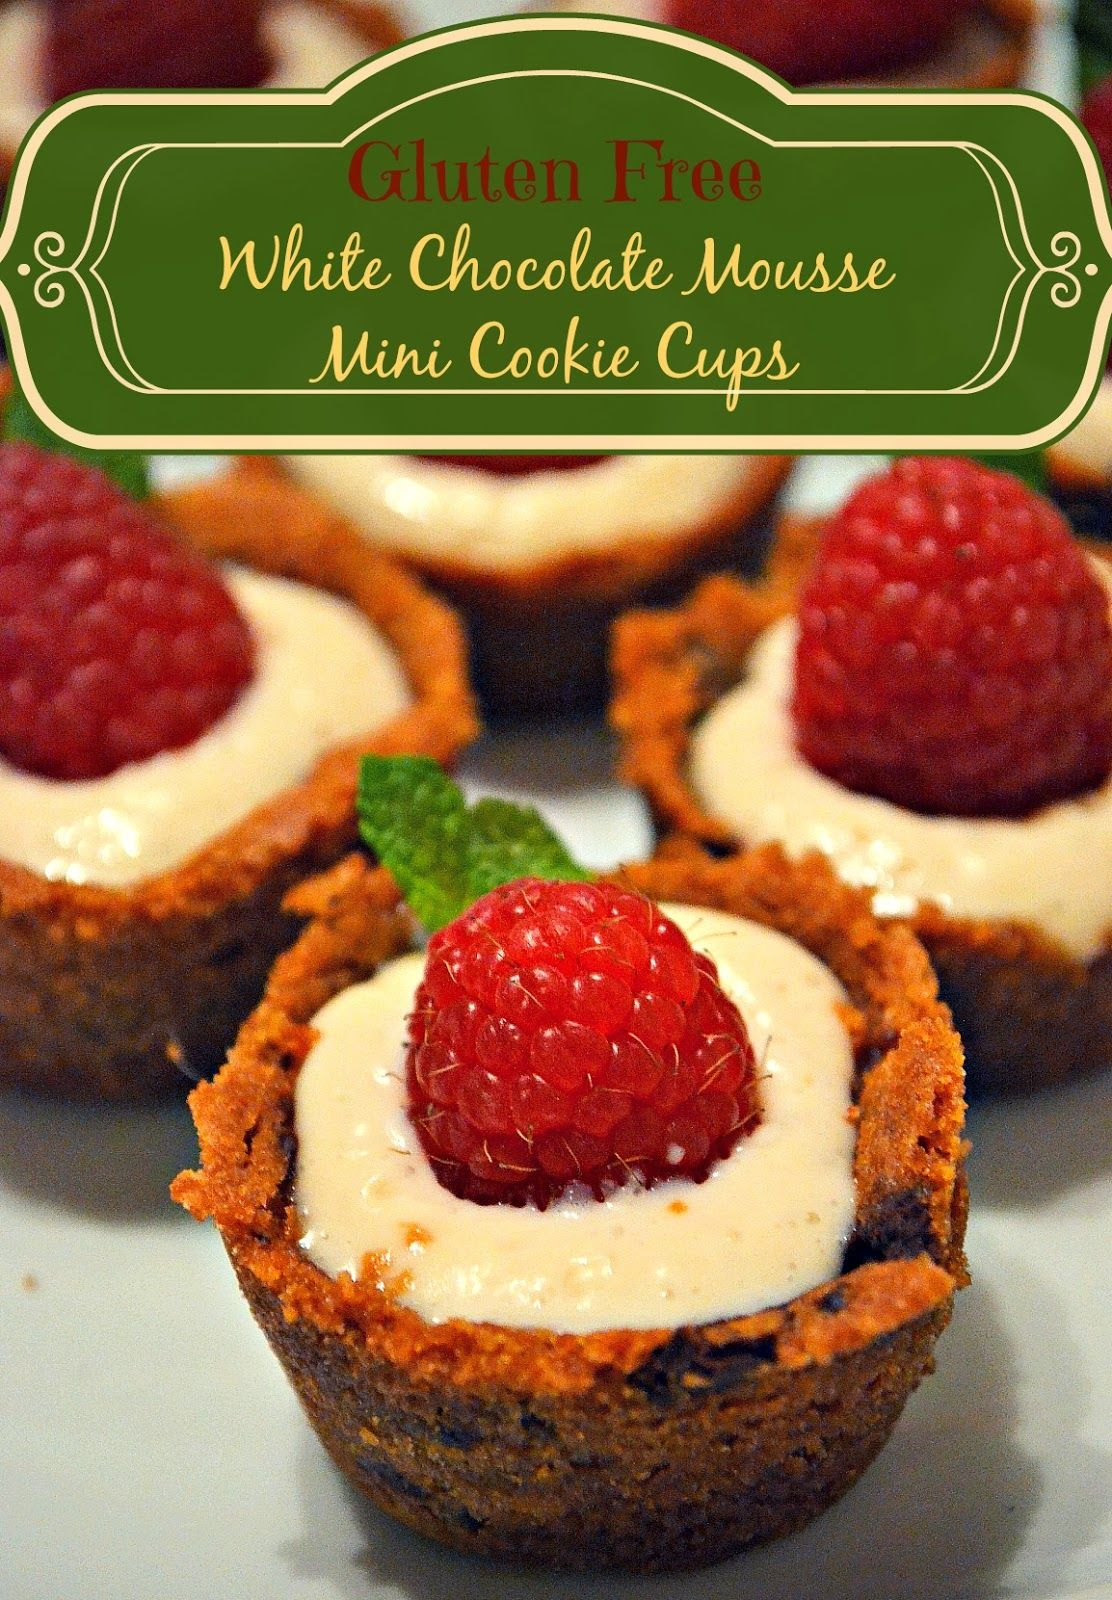 Gluten Free White Chocolate Mousse Mini Cookie Cups ...